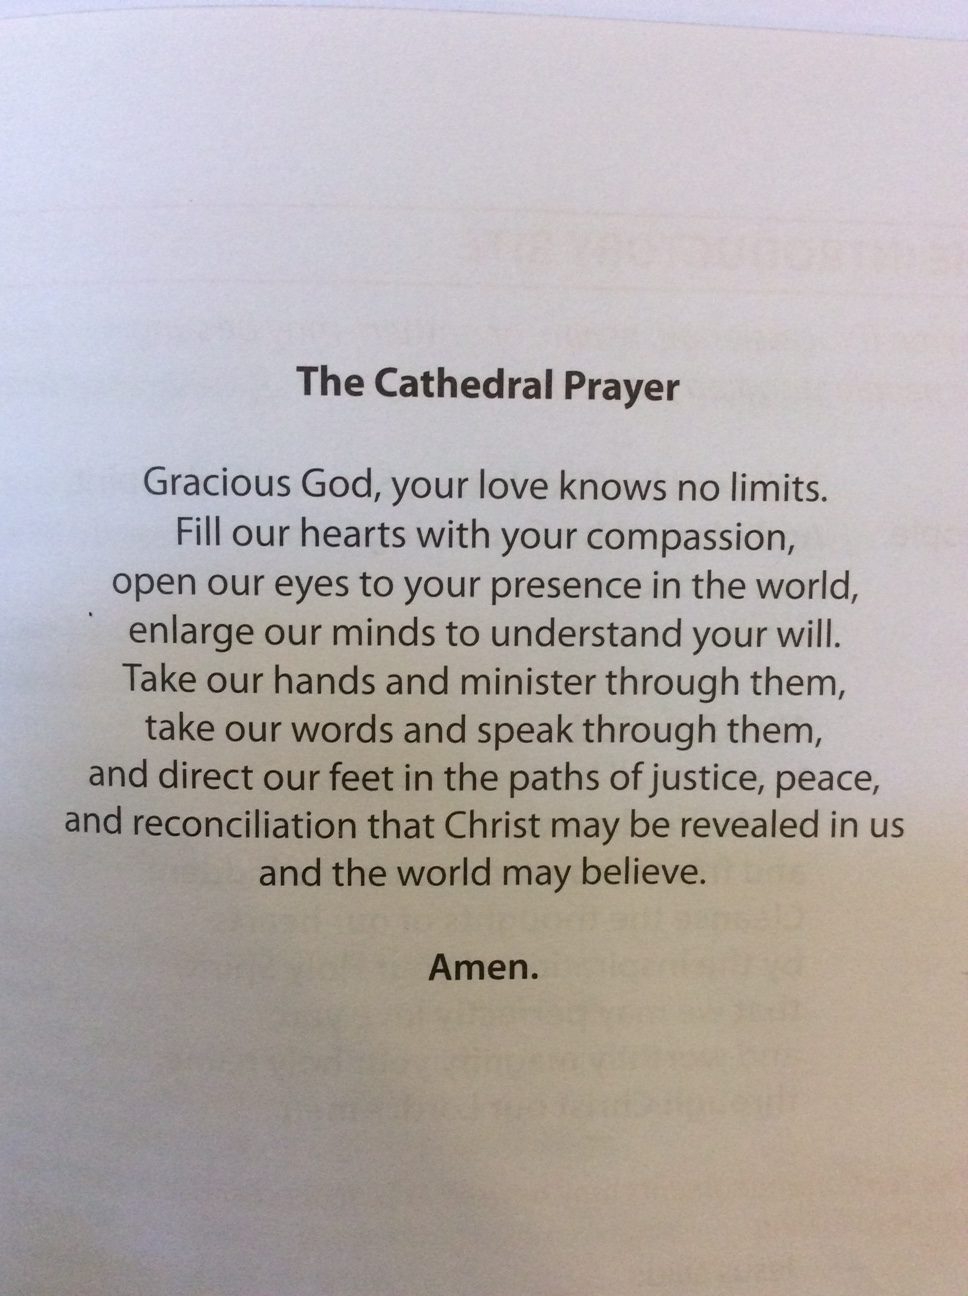 The cathedral prayer of the Cathedral Church of St. George the Martyr in Jerusalem.